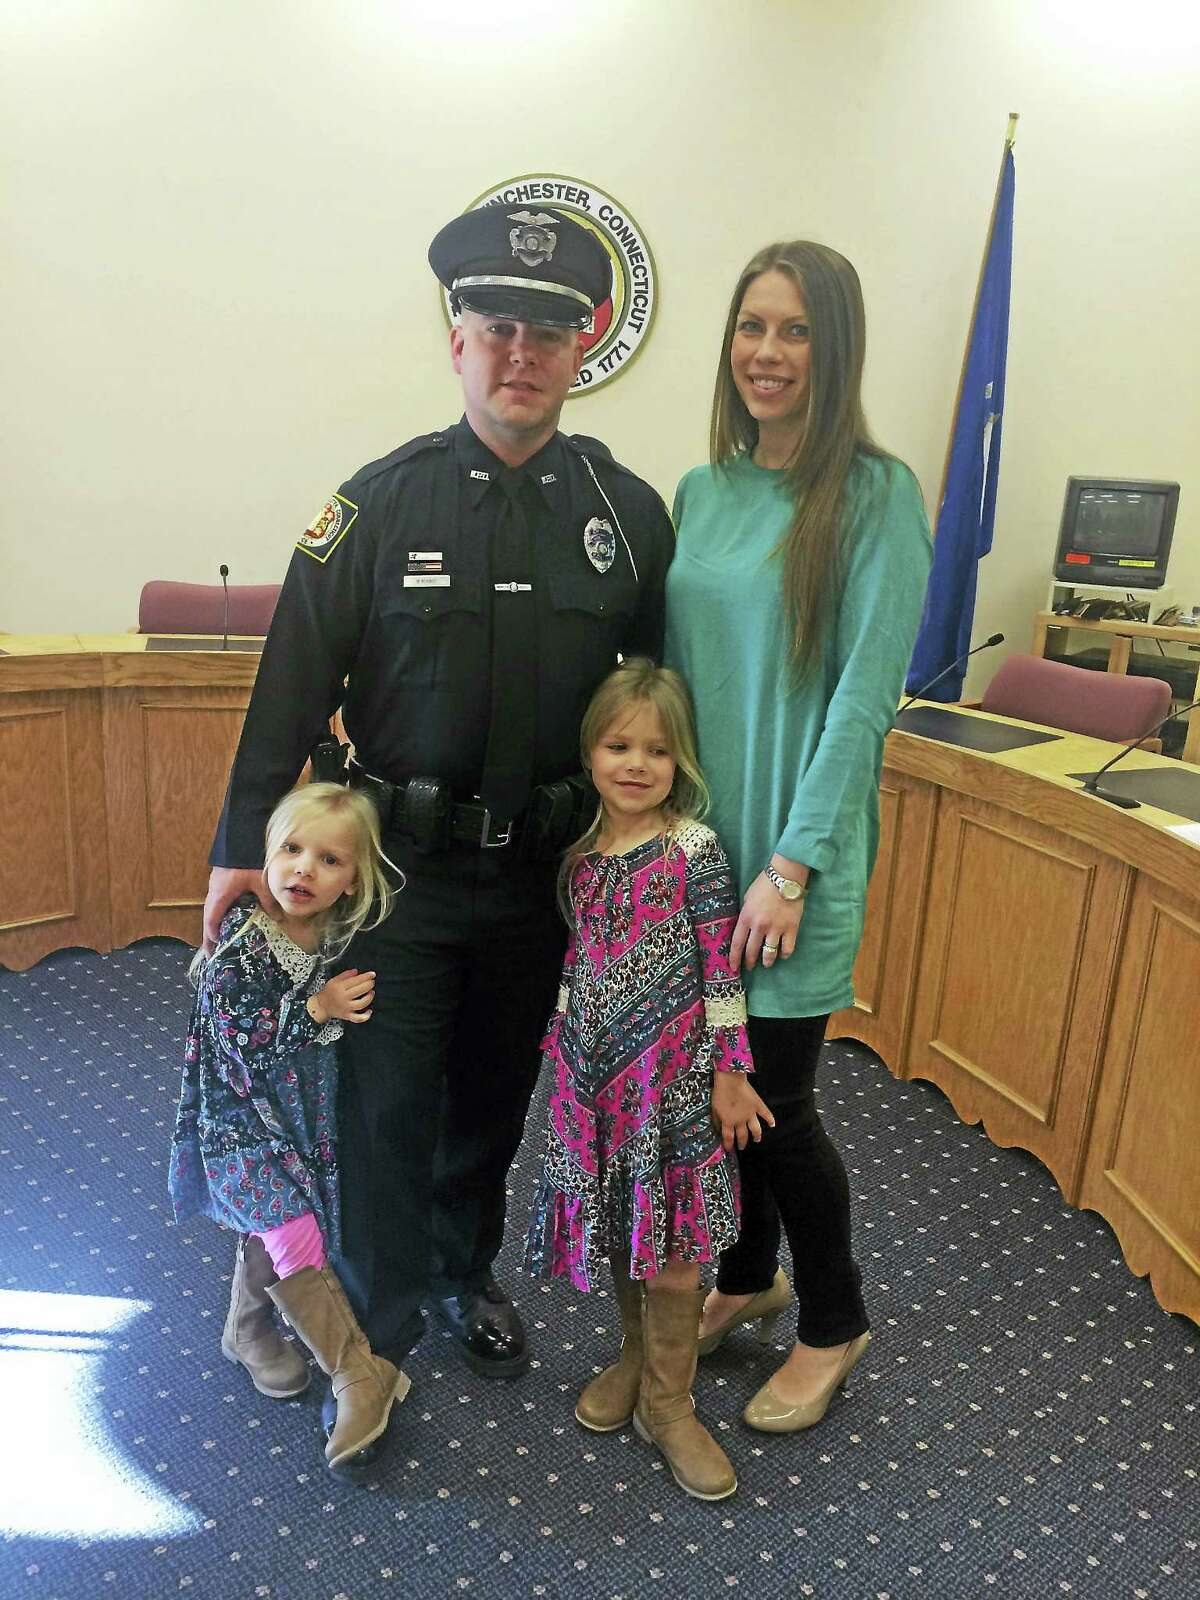 Bradley Kovacs and his family — wife Kathryn and daughters Avery, 5, and Kaylyn, 3.